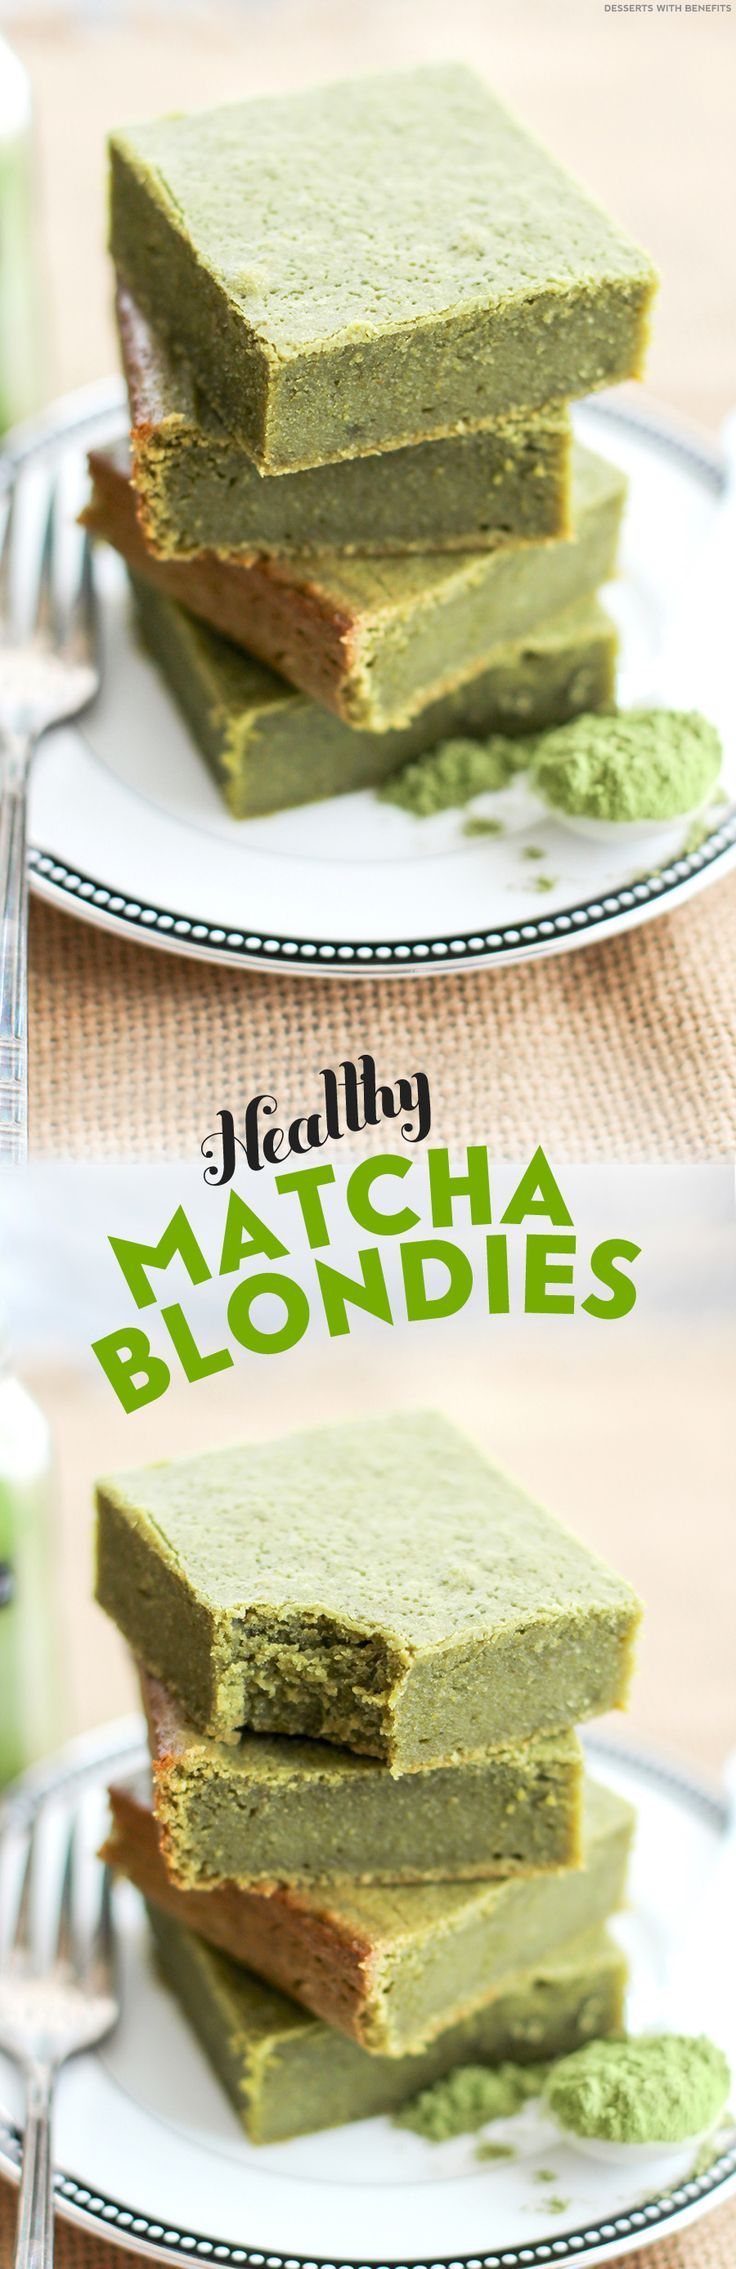 These Healthy Matcha Green Tea Blondies are fudgy, moist, dense and sweet with a hint of white chocolate flavor. Oh, and they're secretly 100% whole grain, refined sugar free, gluten free, and vegan!